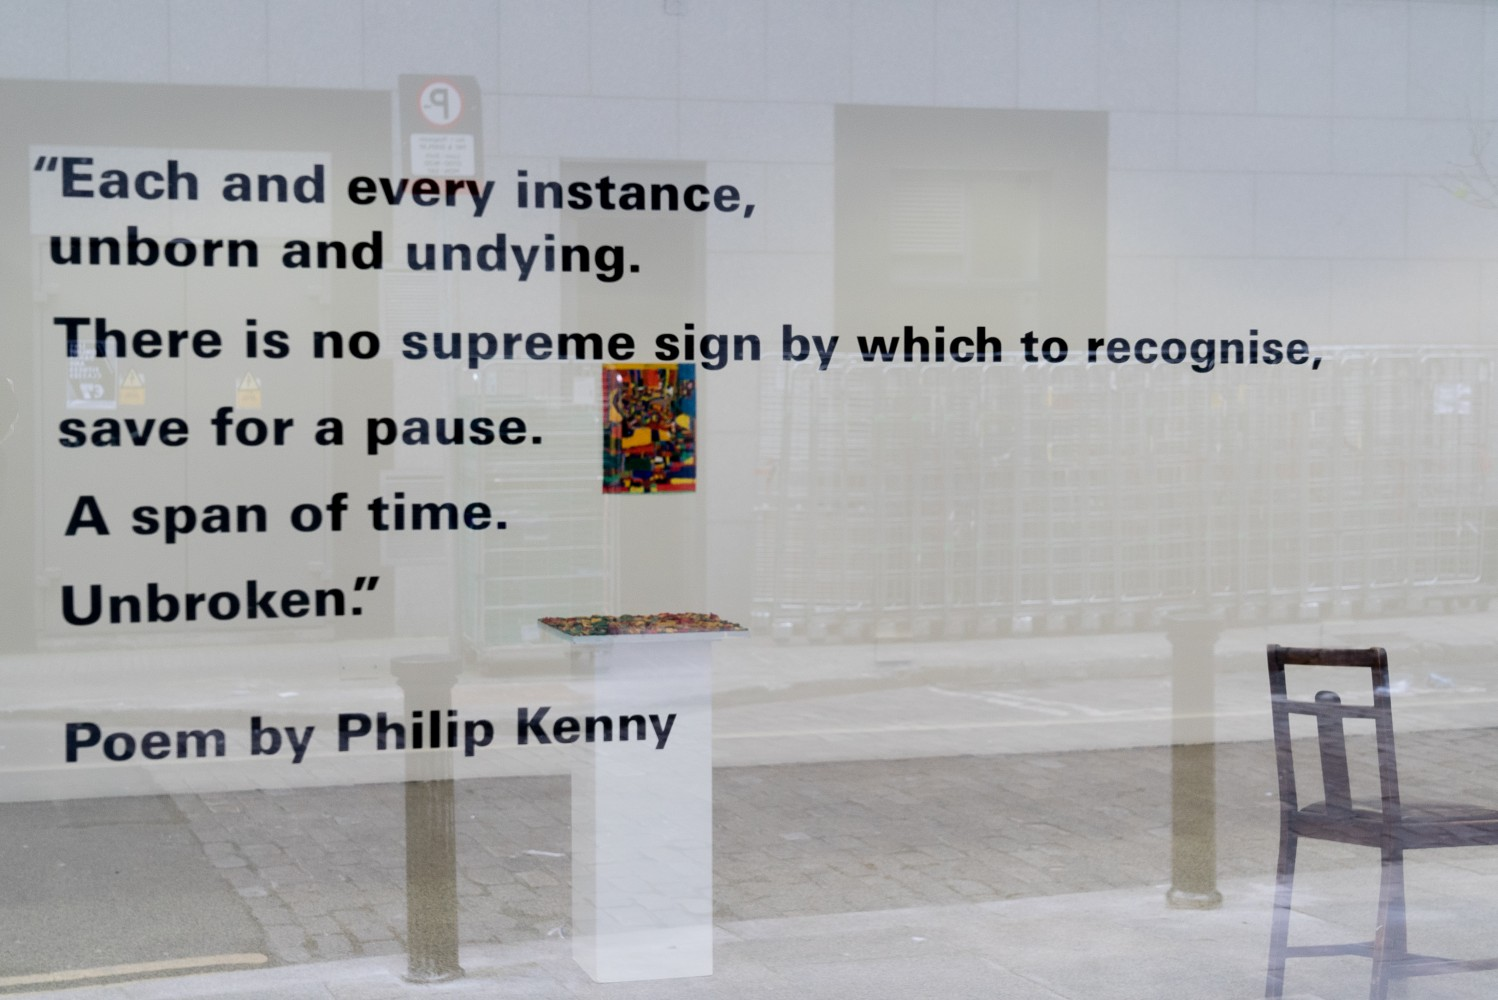 Six lines of a poem and the name of the poet in vinyl in bold black sans serif font on the glass of a gallery. In the background inside the gallery is a colourful painting on a white wall, a flat colourful artwork on a white plinth and on the right hand side part of a chair sculpture. The floor of the gallery is speckled grey. In the glass there is a reflection of the street including a path, cobbles and a parking sign.